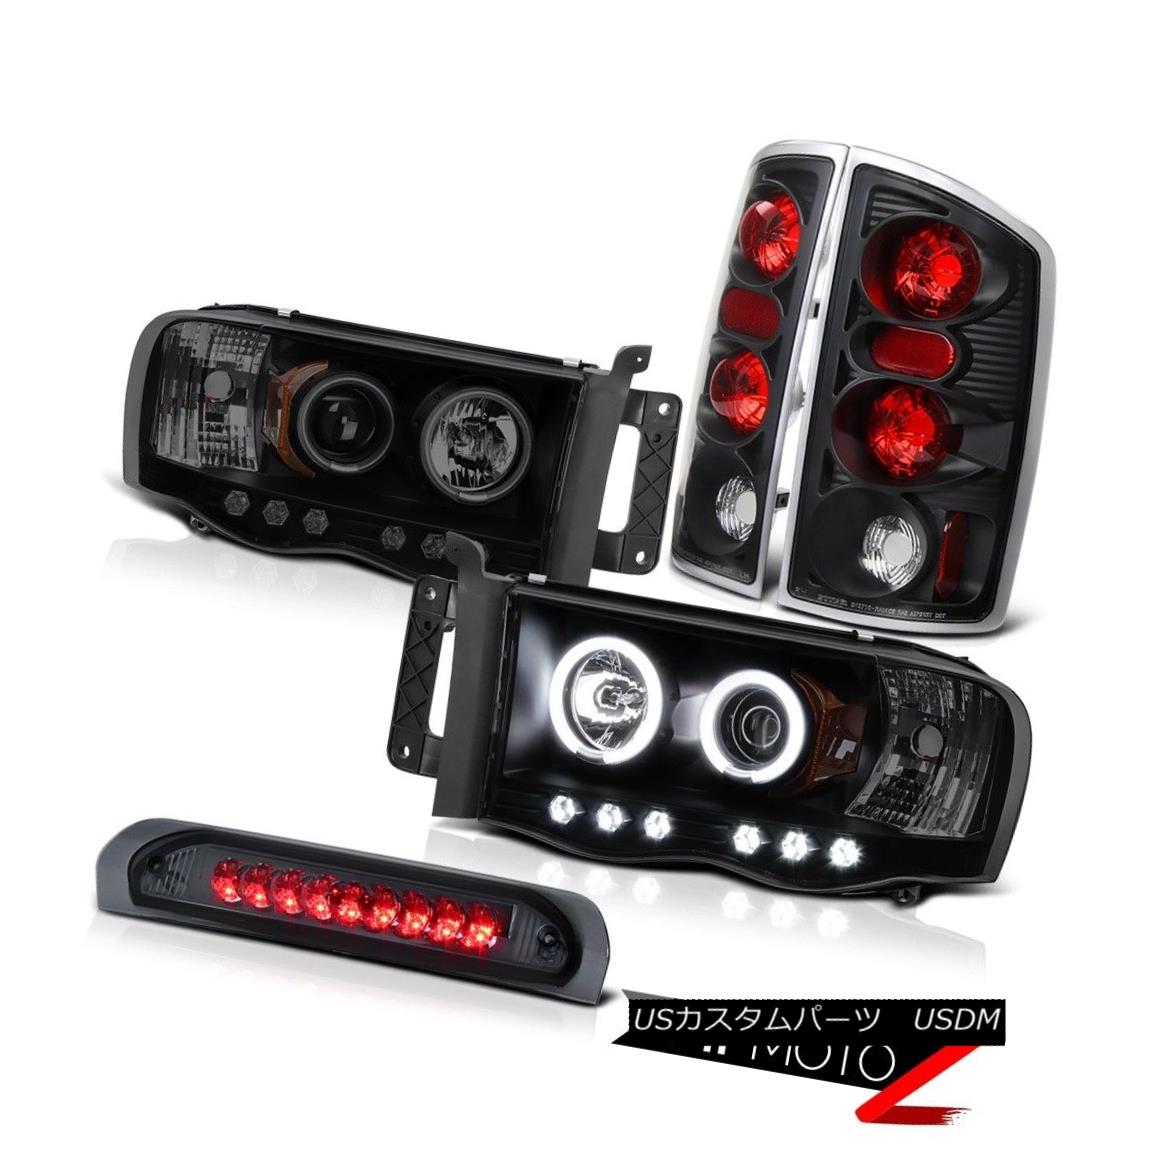 ヘッドライト 2002-2005 Ram Magnum V10 SLT CCFL Fluorescence Angel Eye Headlight Tail Light 2002-2005 Ram Magnum V10 SLT CCFL蛍光エンジェルアイヘッドライトテールライト